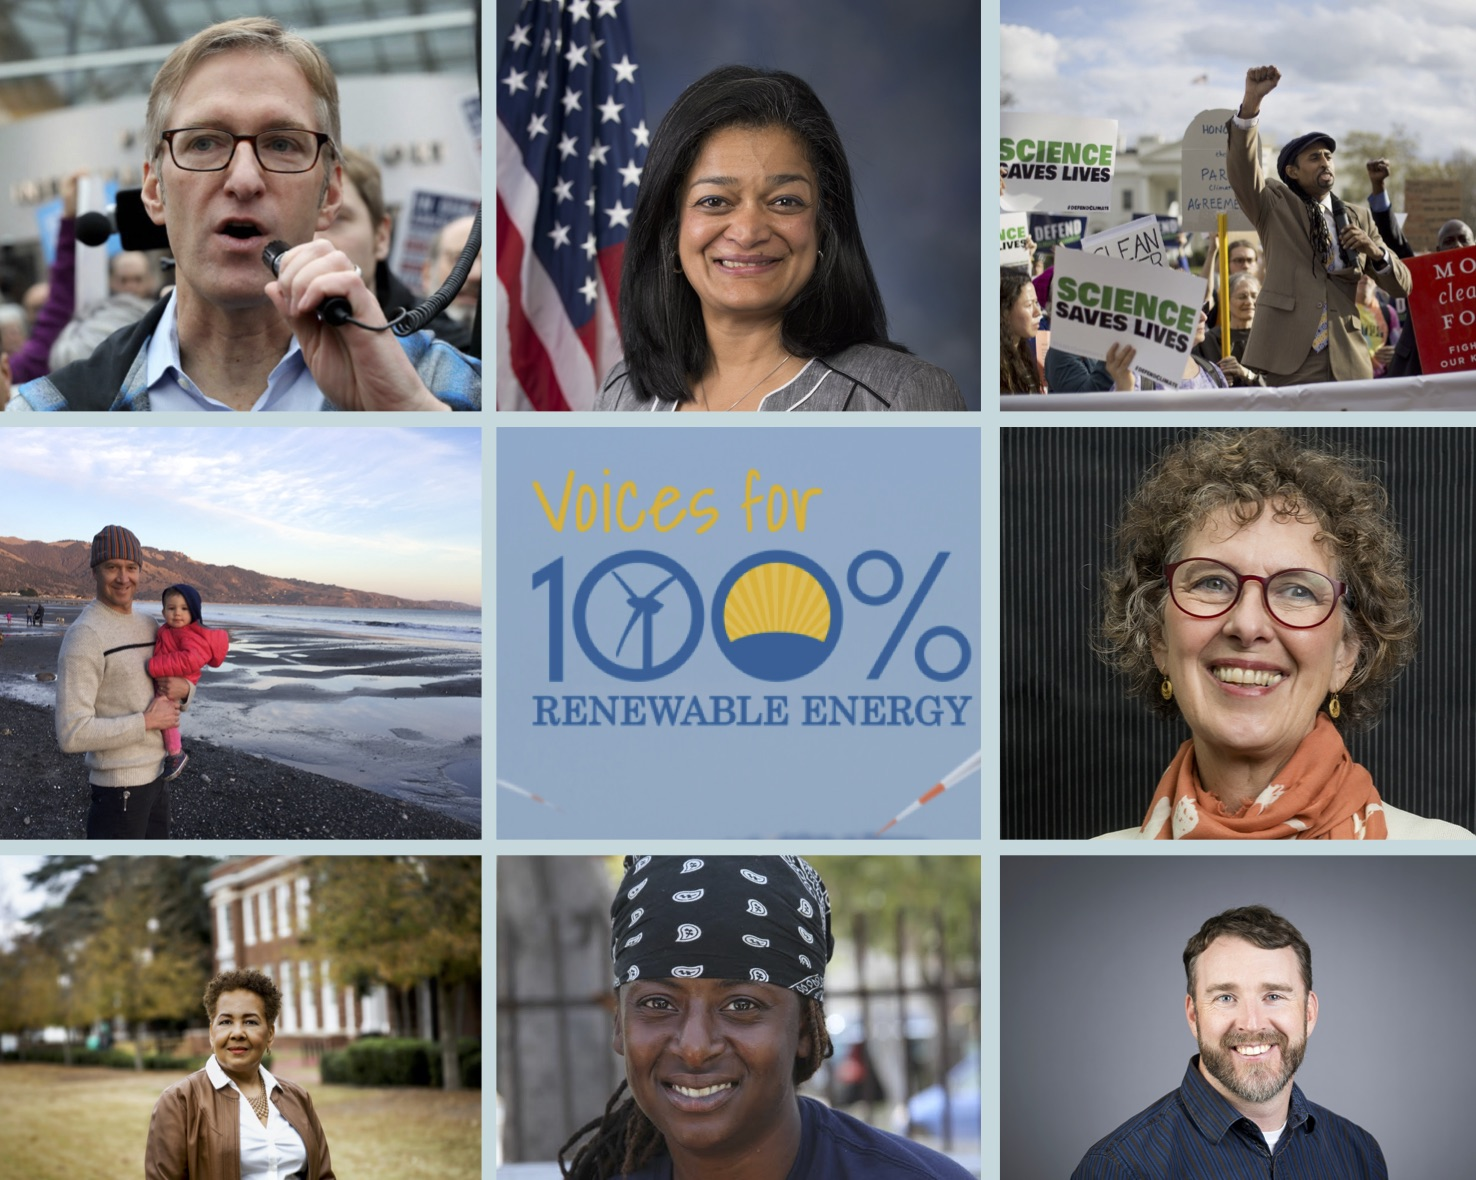 Voices for 100% Renewable Energy